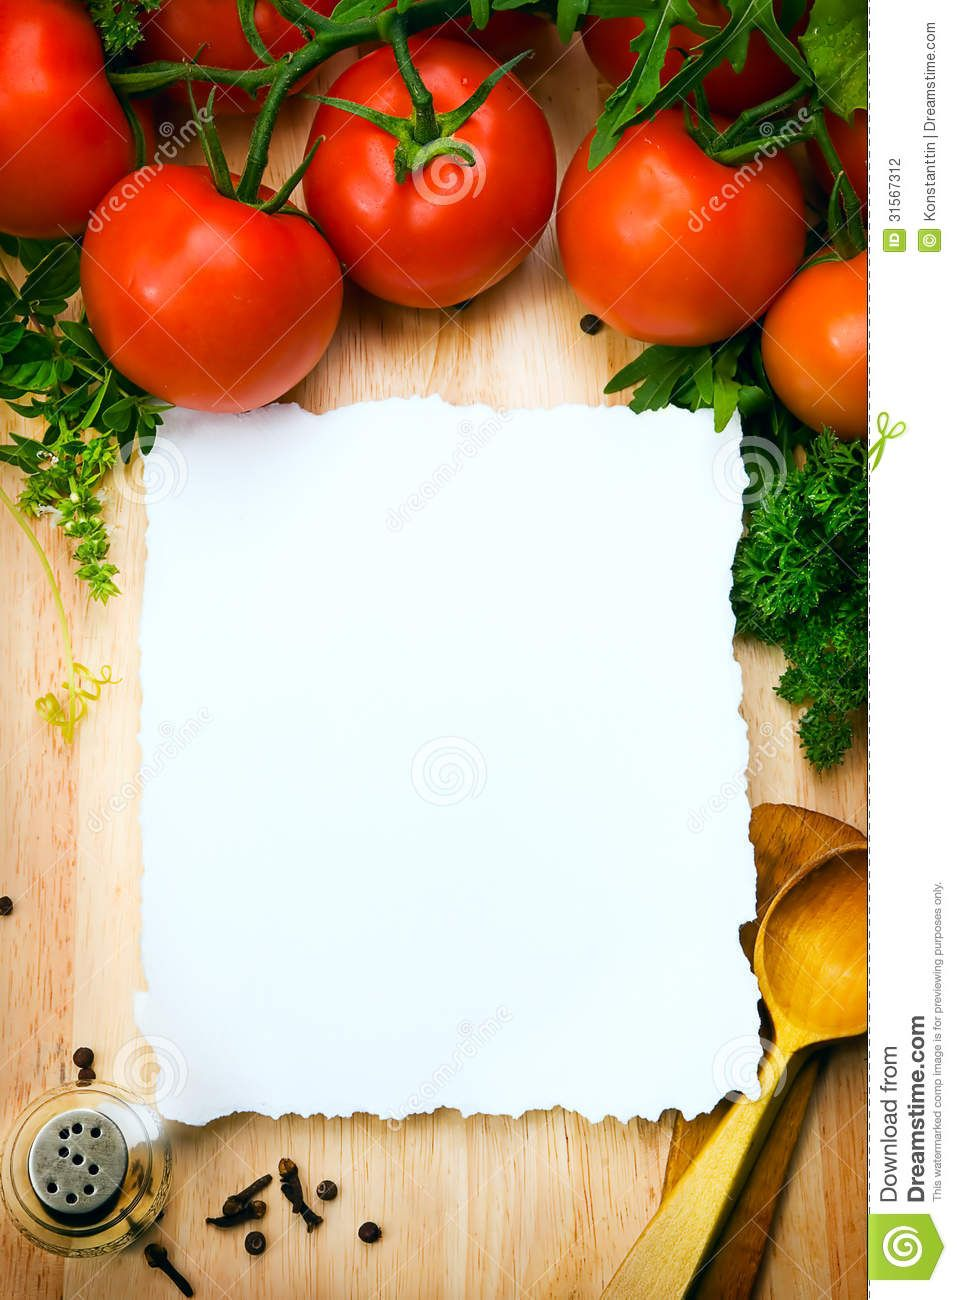 Wallpaper Culinary Arts Food Healthy Food Photograph In 2019